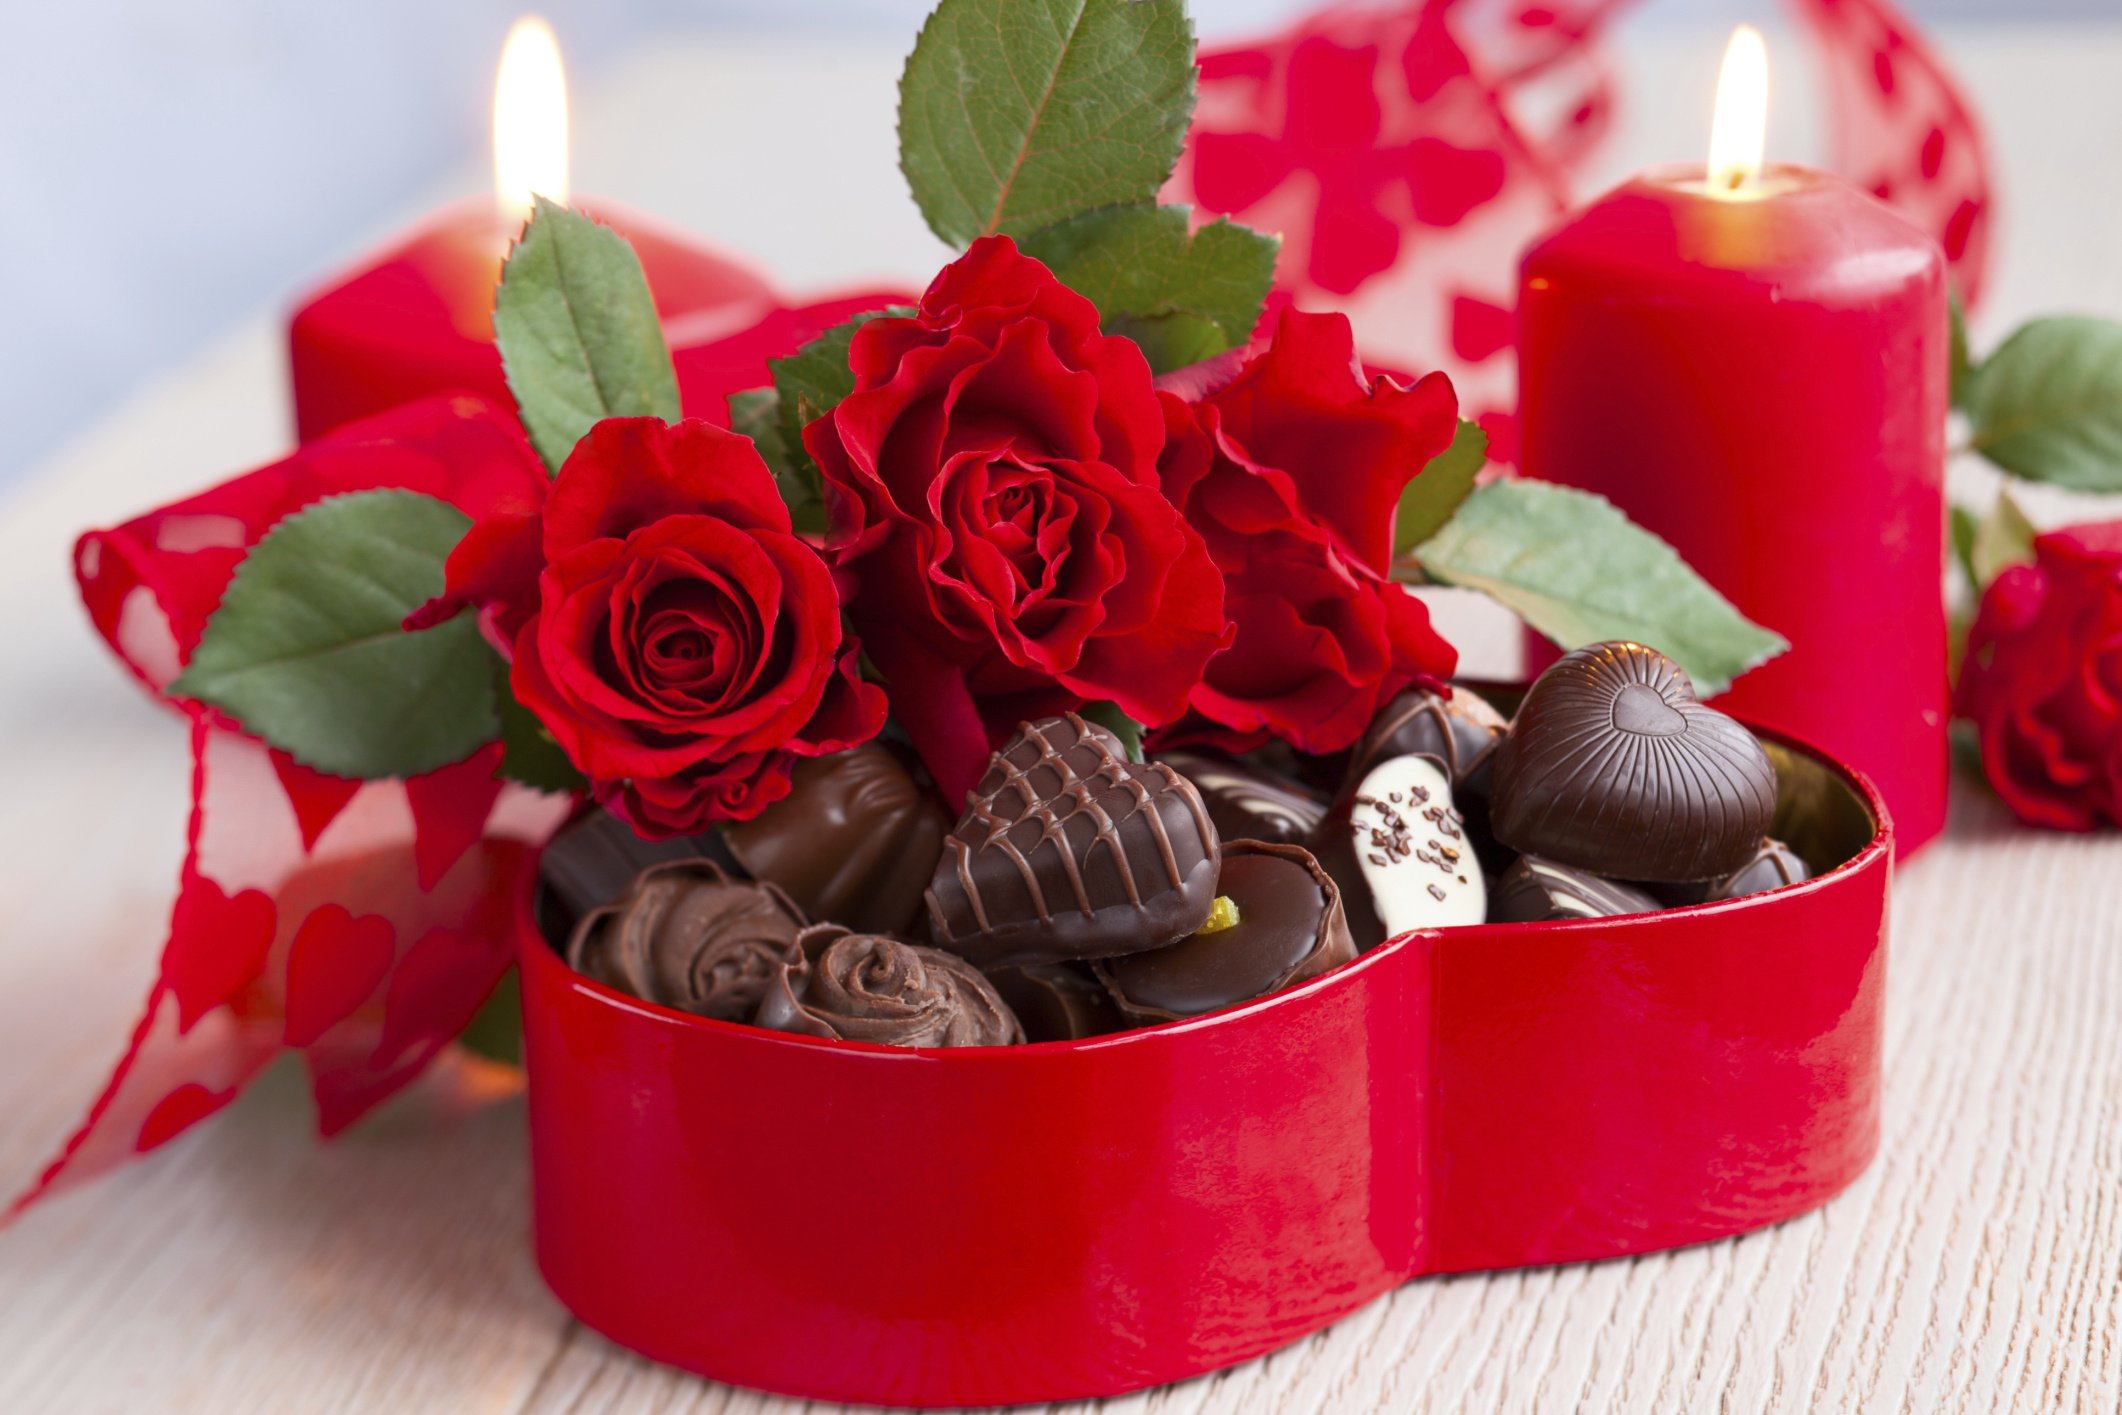 Flowers Bouquet Love February 14 Holiday Heart Candy Chocolate